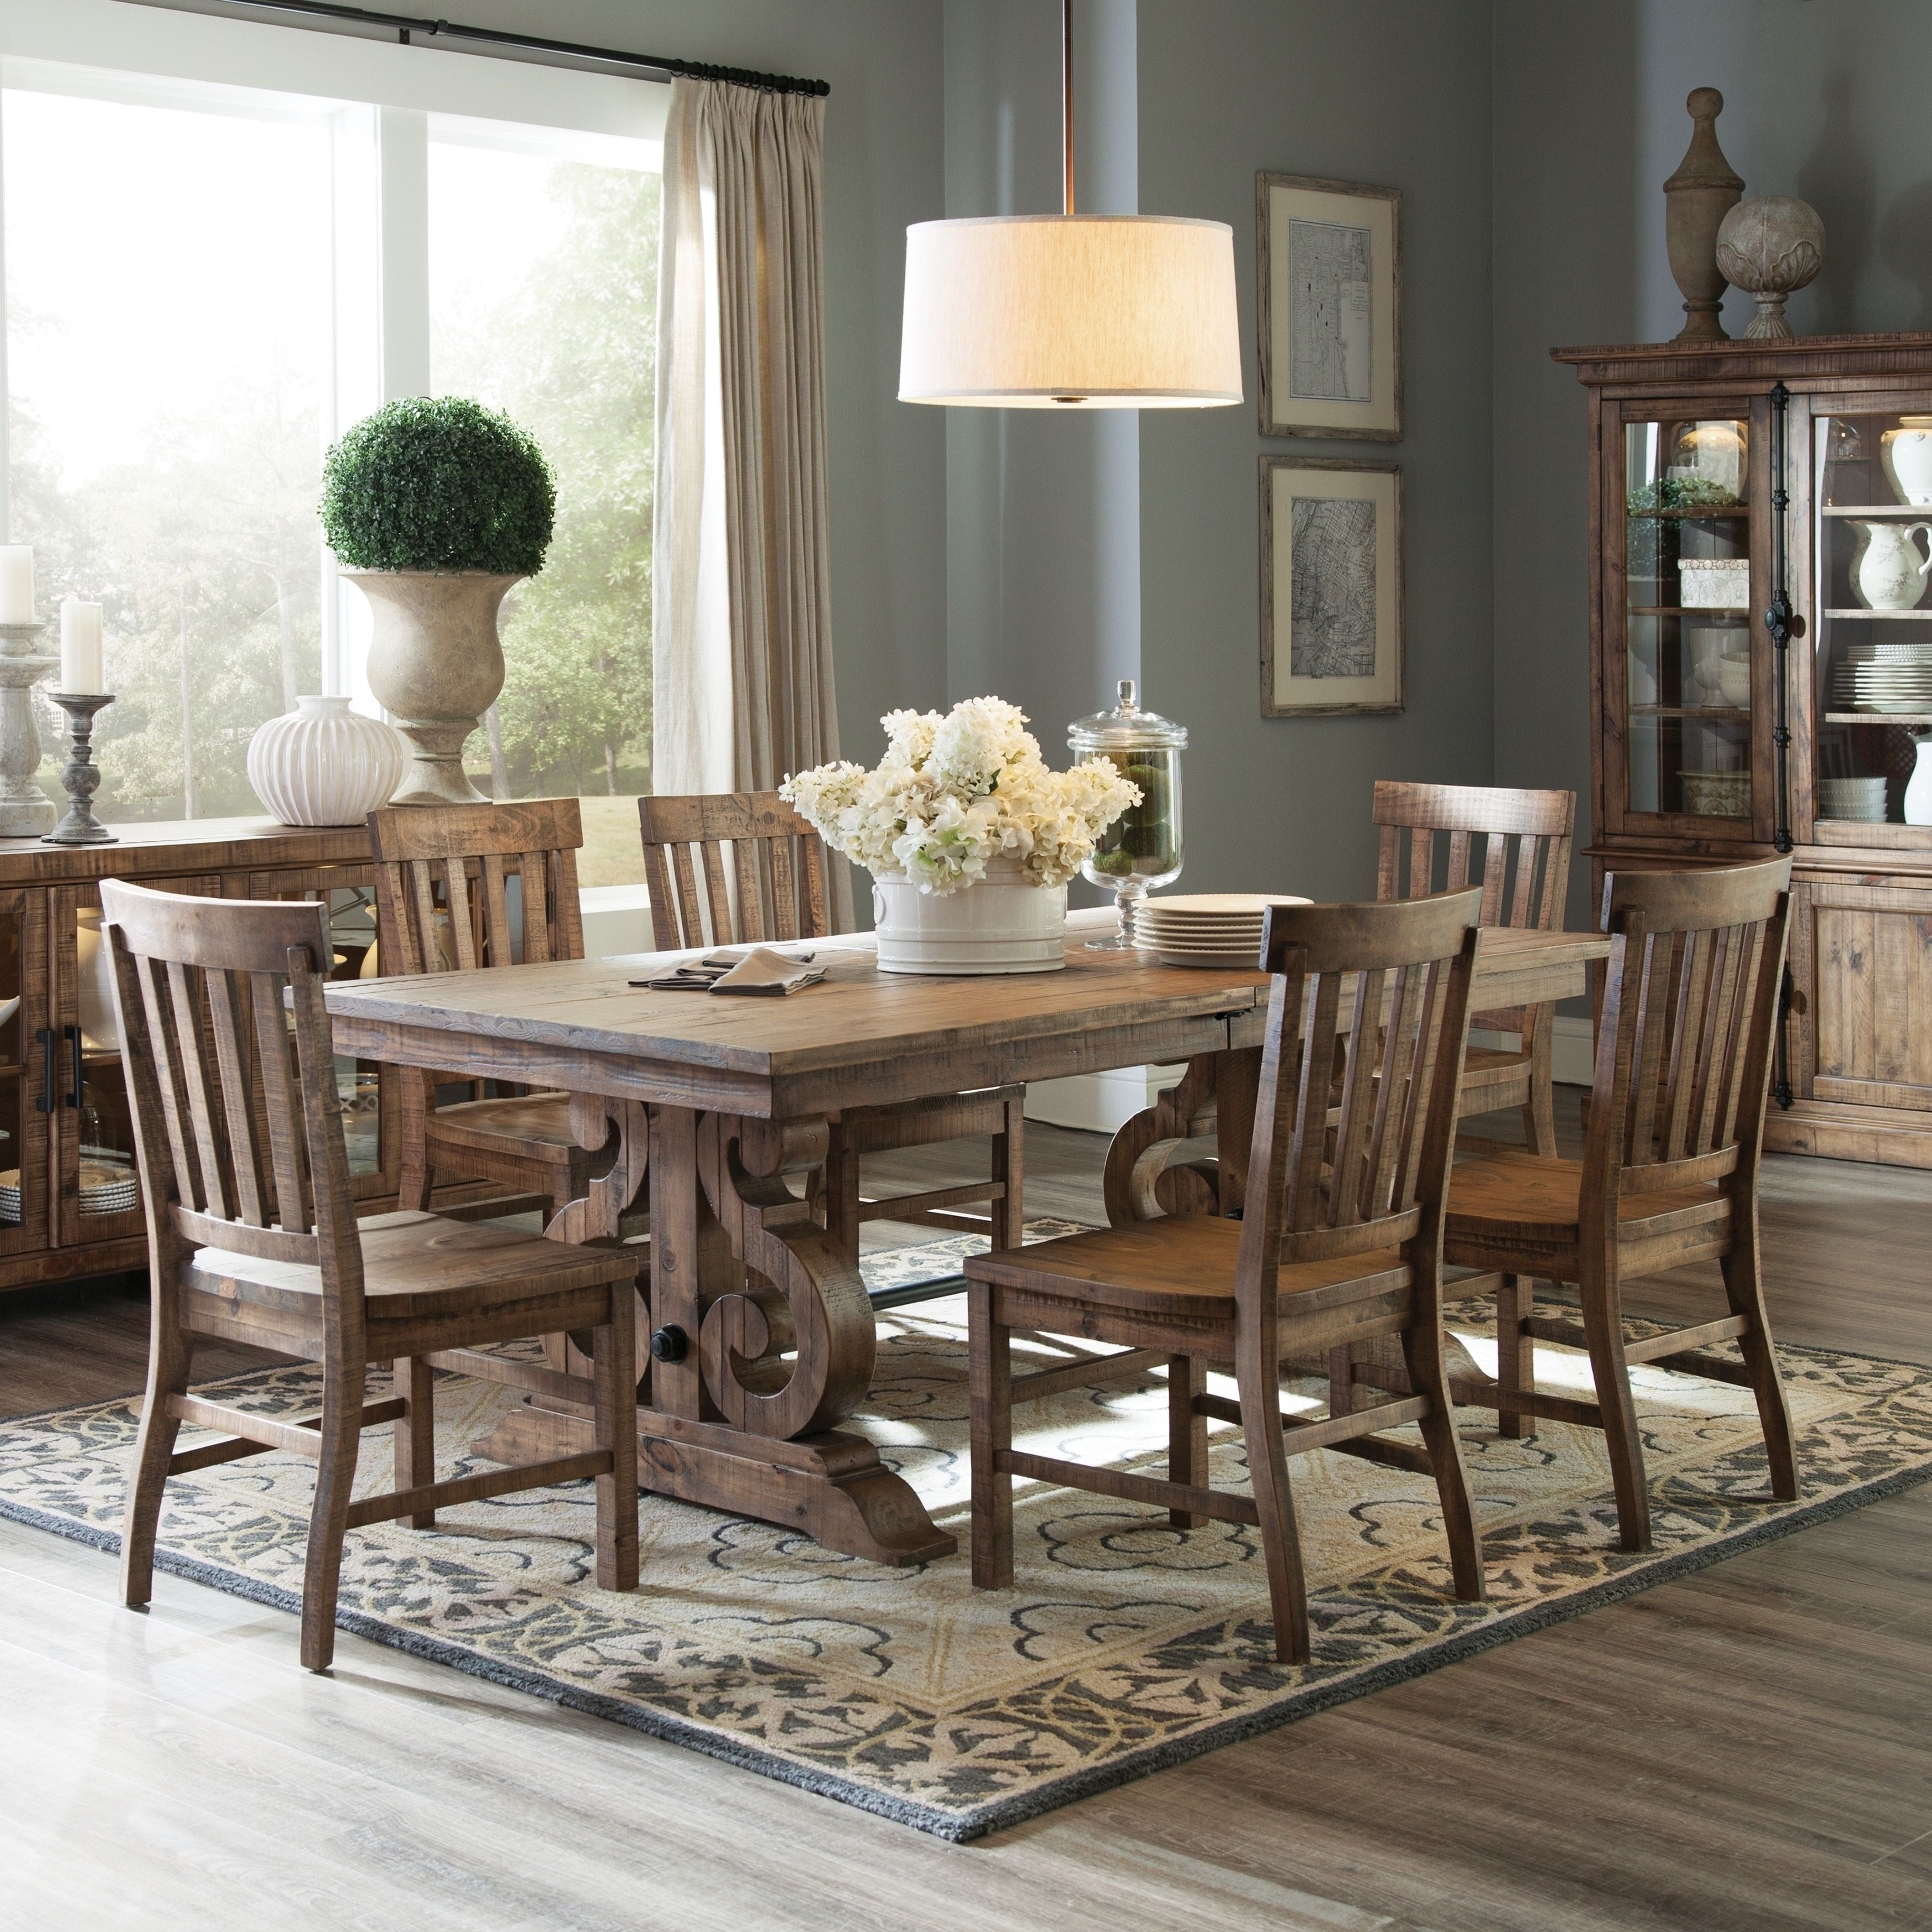 Gracewood Hollow Aldous Rectangular Wood Dining Table In Weathered Regarding 2017 Artisanal Dining Tables (View 12 of 20)